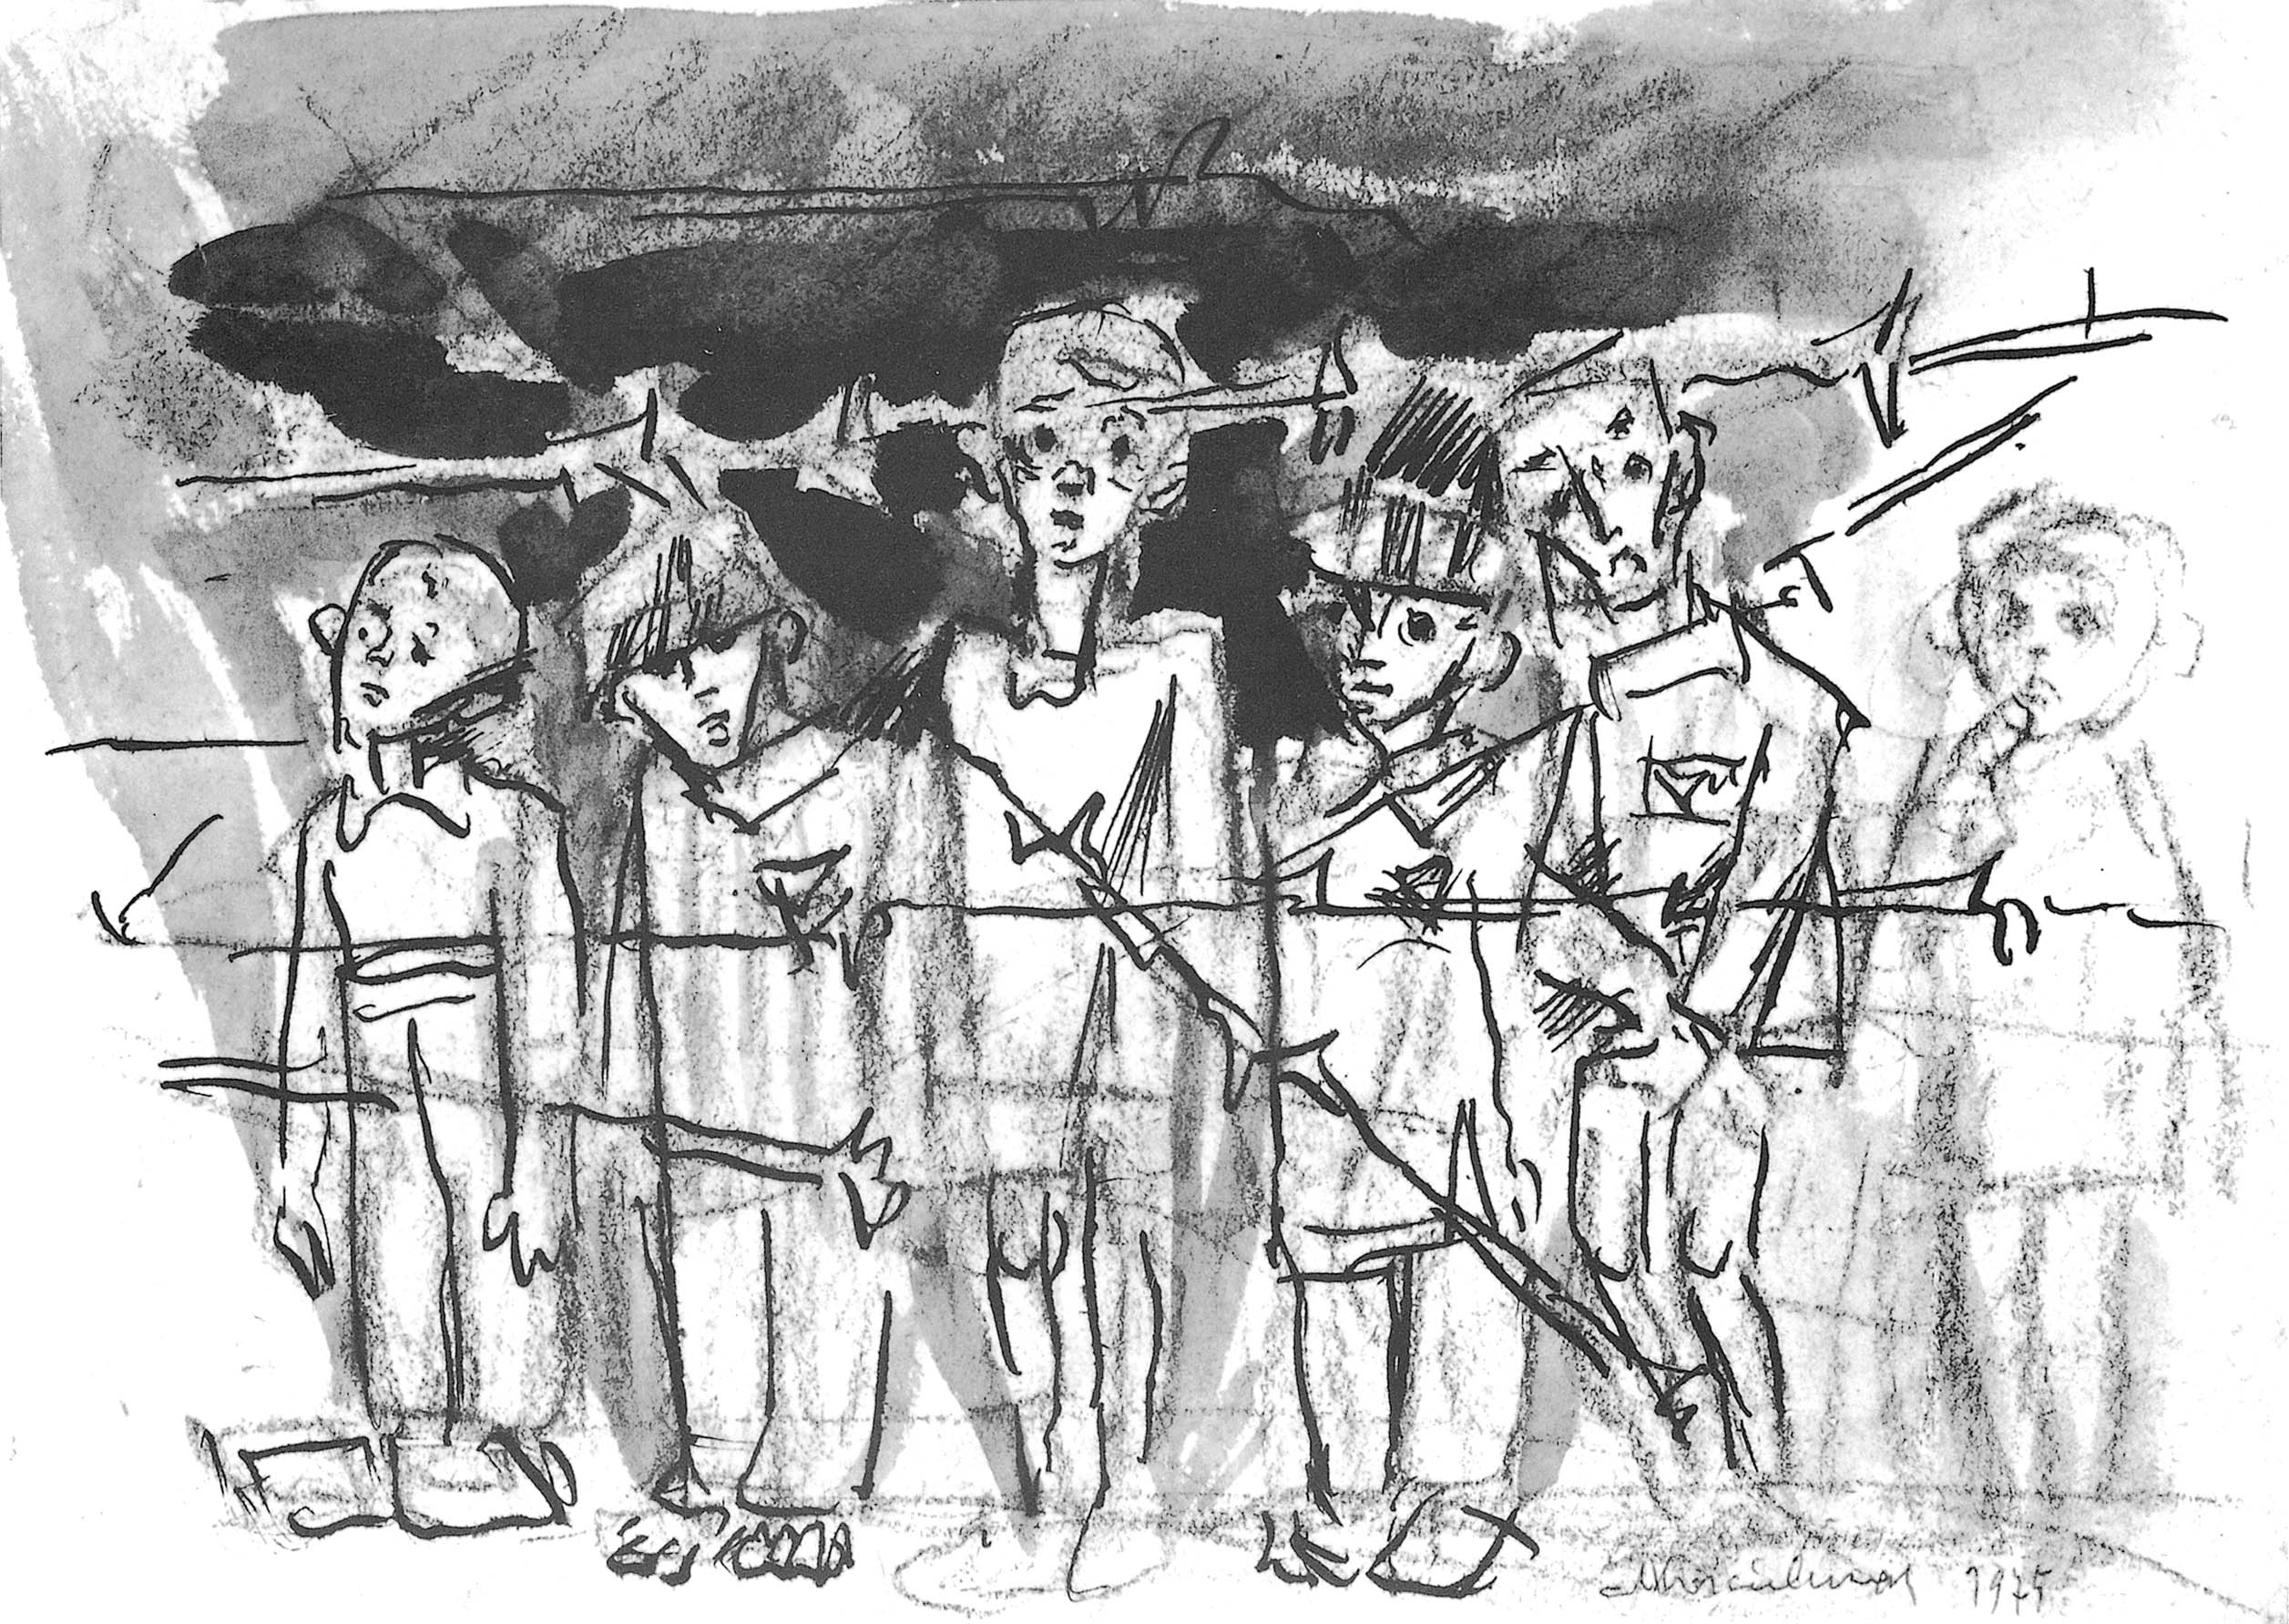 A drawing by Mieczyslaw Koscielniak, titled 'Children Behind Wire,' depicts internees at the Auschwitz-Birkenau concentration camp, where Koscielniak was held between 1941 and 1945. | COURTESY OF MICHIKO NOMURA